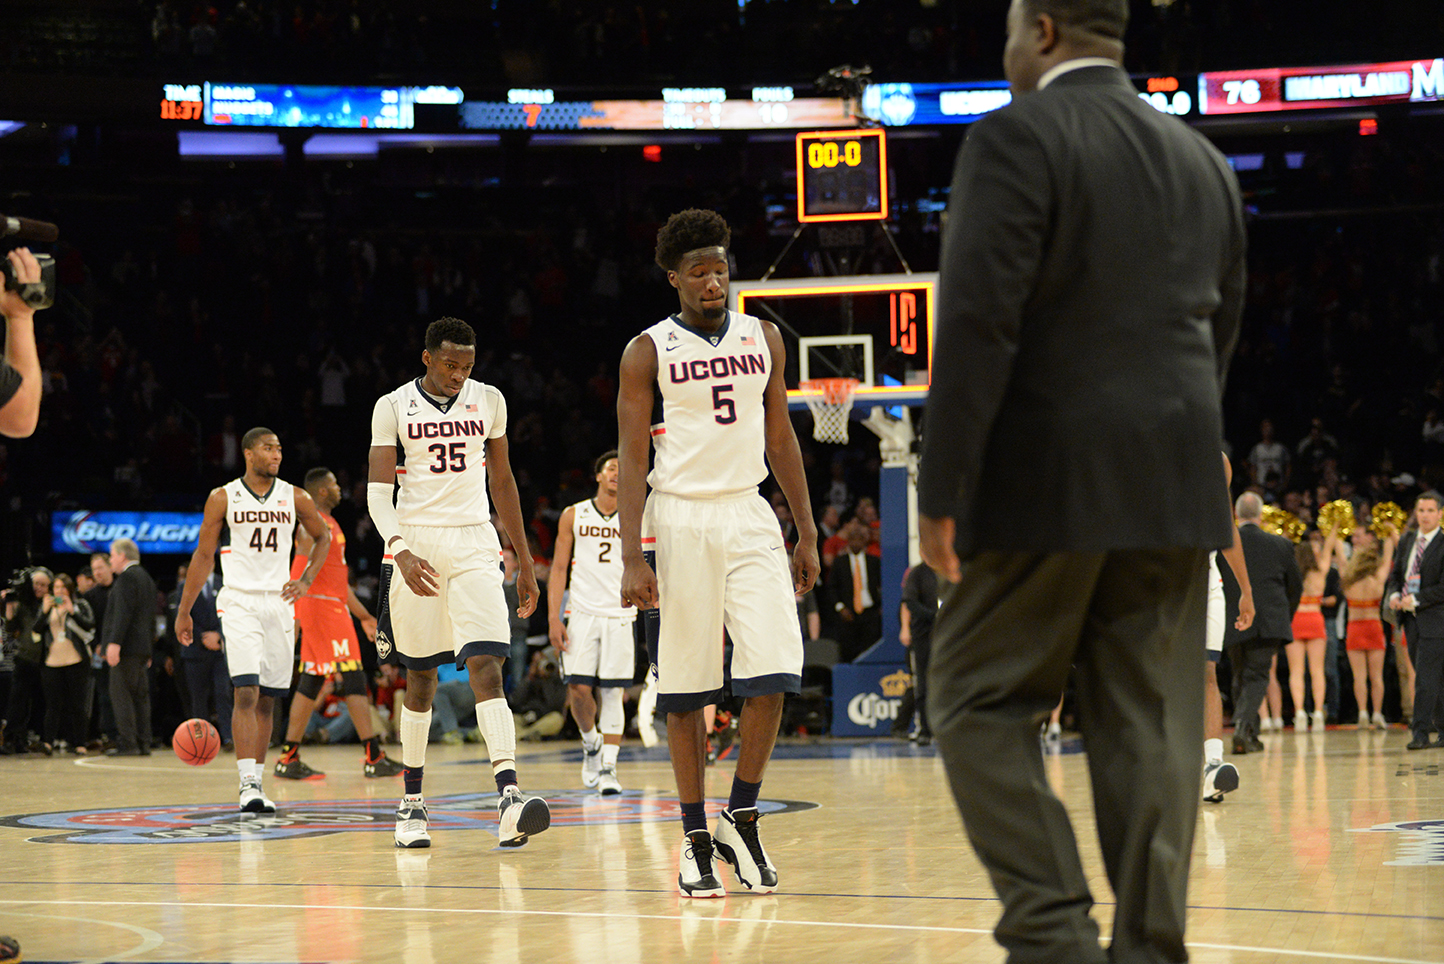 UConn men's basketball forward Daniel Hamilton (5), center Amida Brimah (35) and other members of the team are seen walking off the court after losing to No. 6 Maryland at Madison Square Garden in New York on Tuesday, Dec. 8, 2015. (Ashley Maher/The Daily Campus)